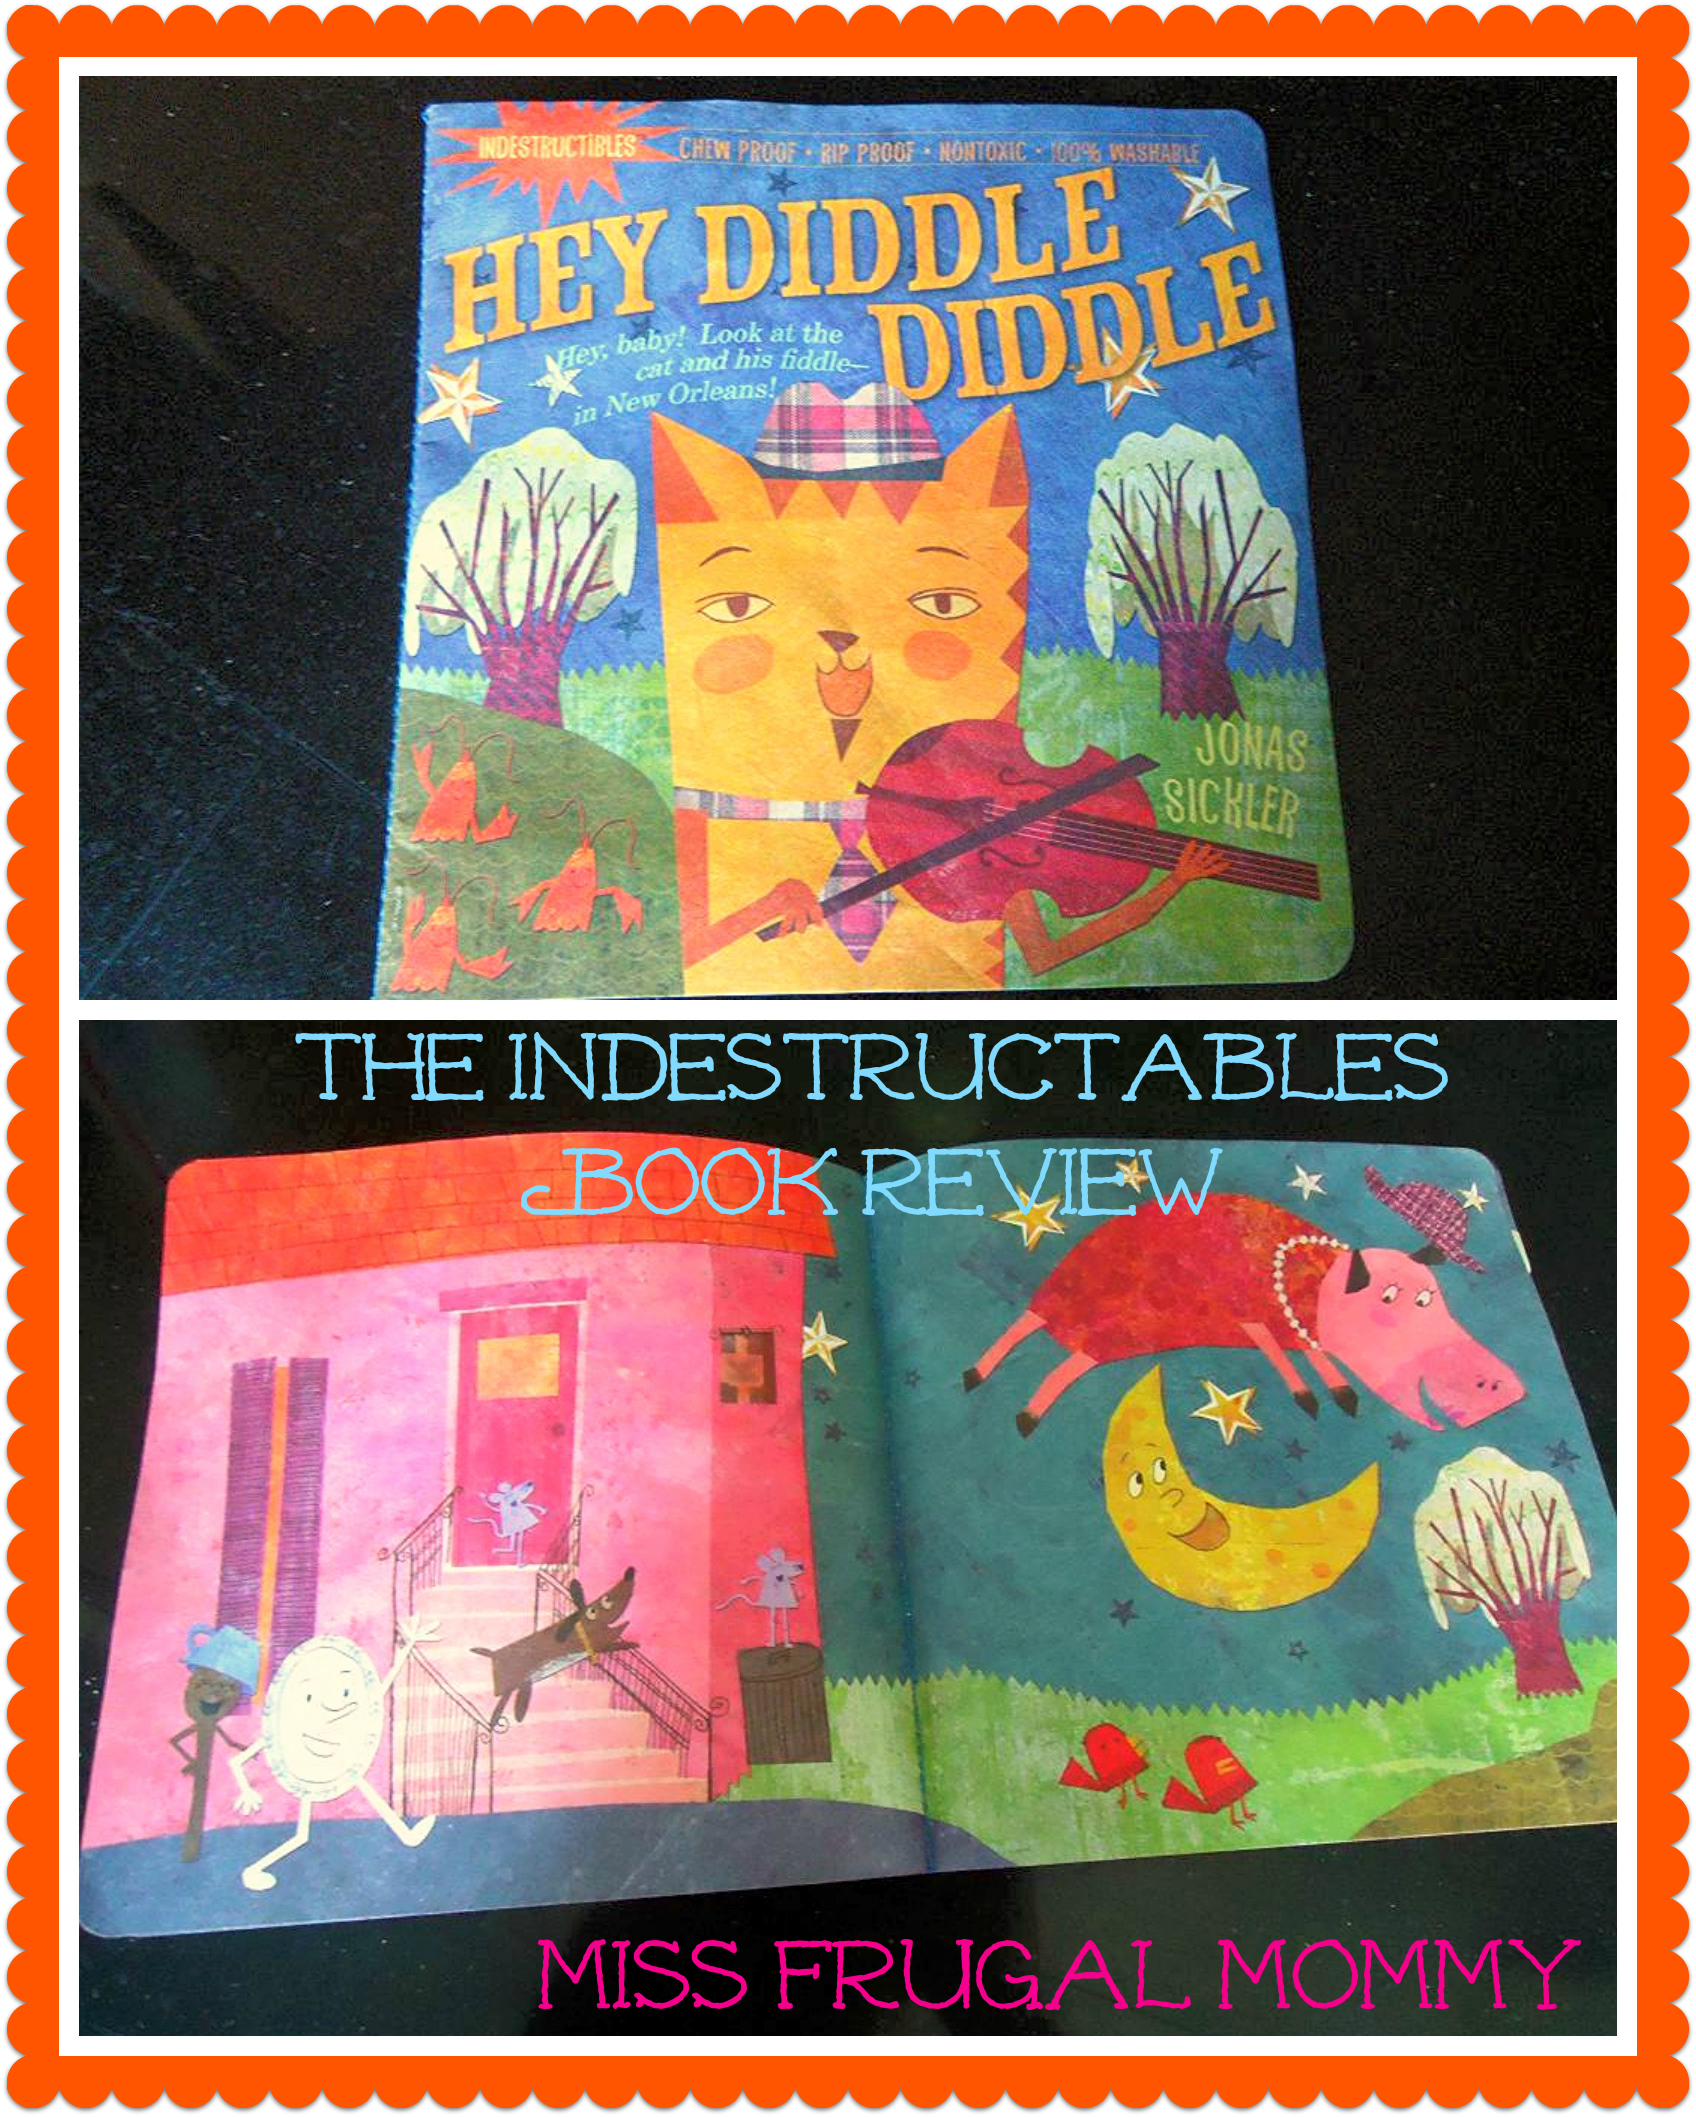 The Indestructables Book: Eco-friendly Book Review